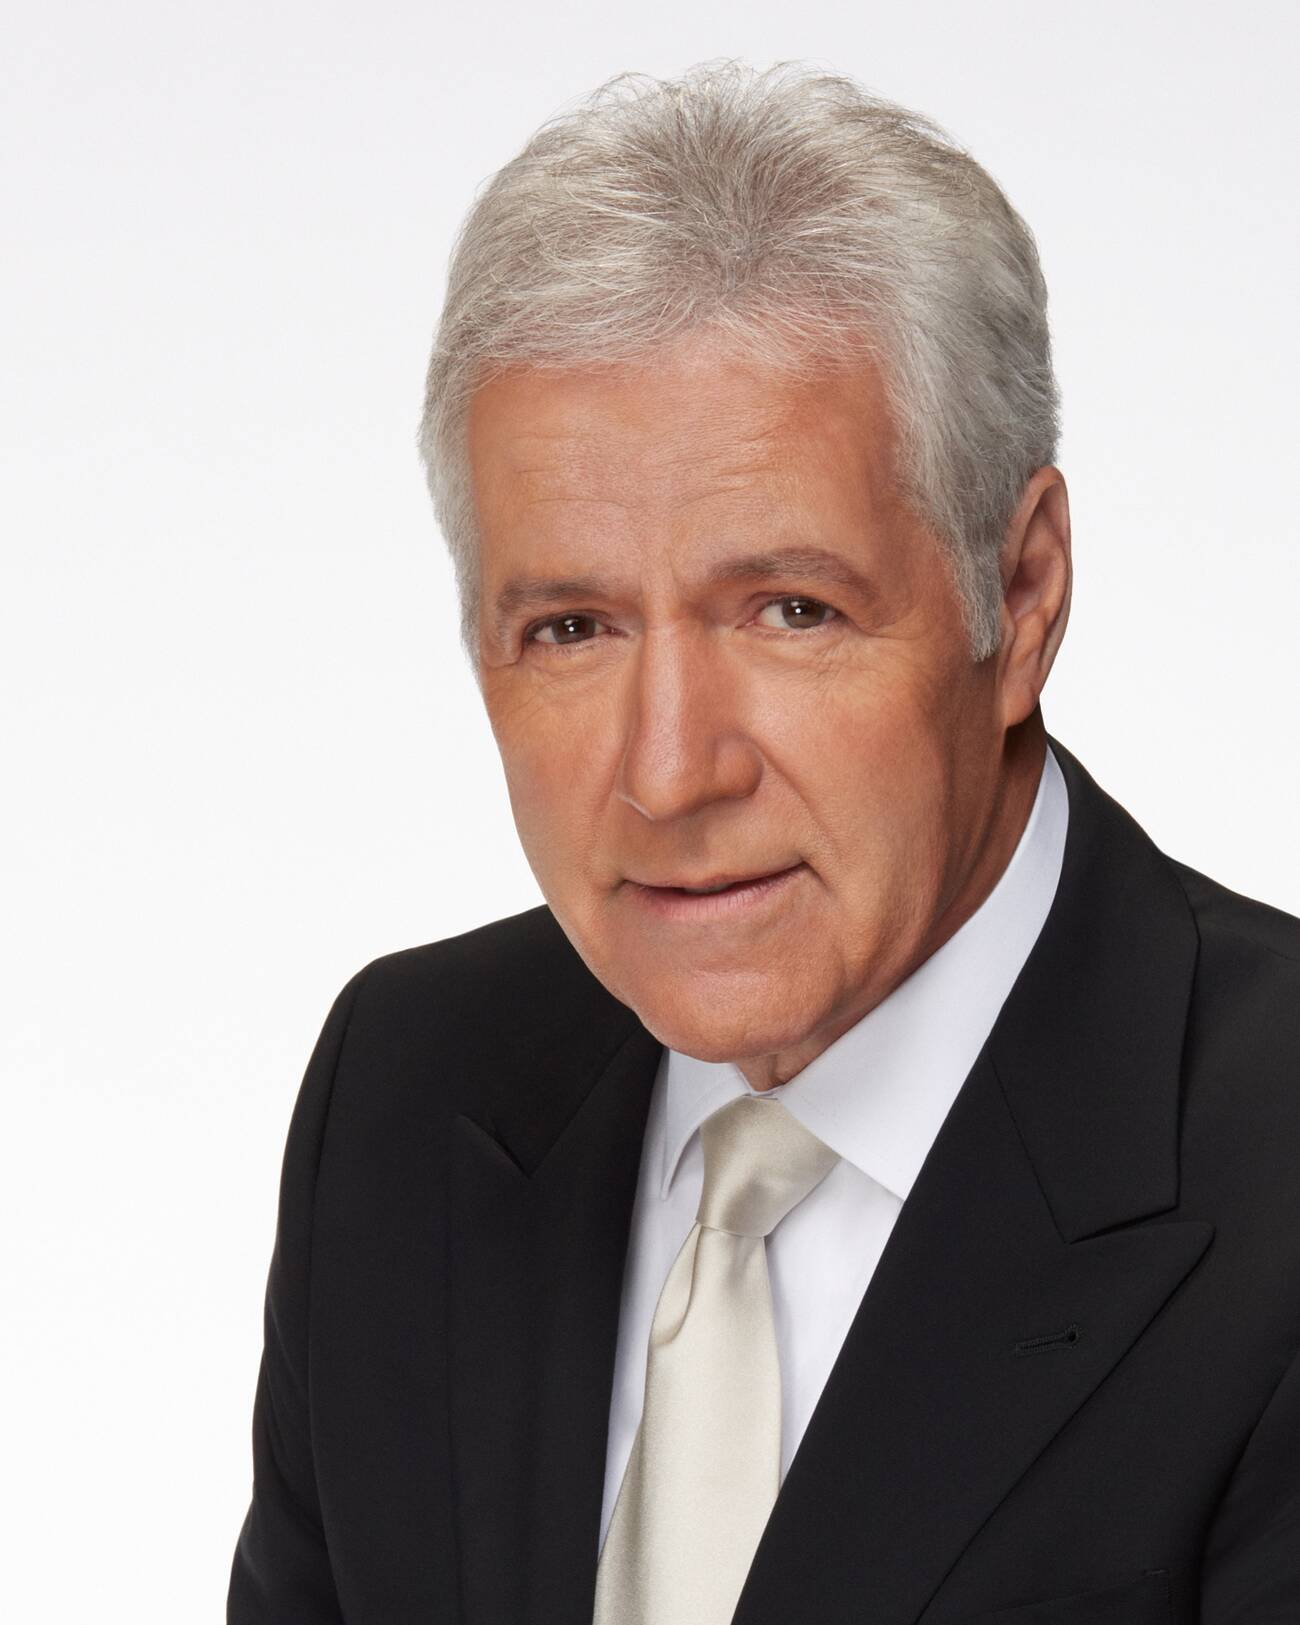 Jeopardy Host Alex Trebek Is Coming To Famous PEOPLE